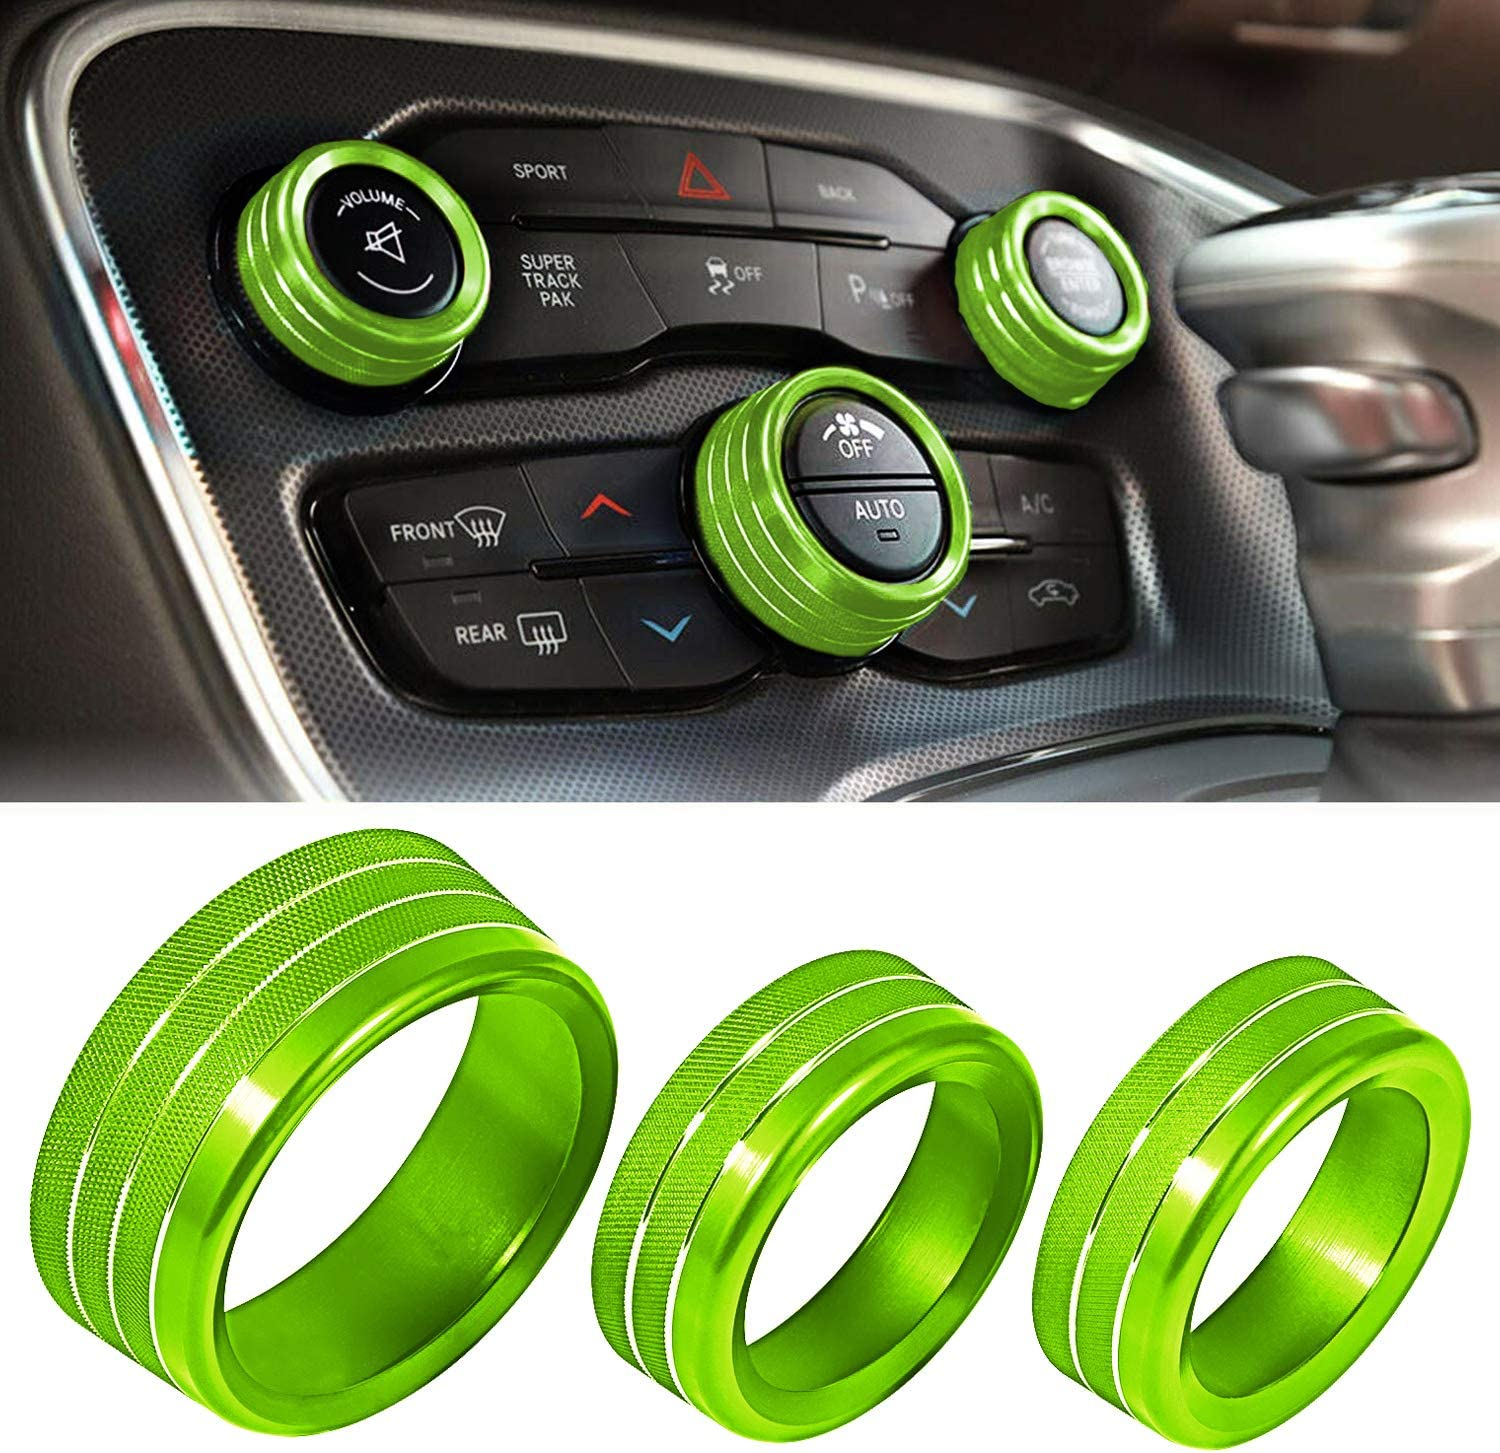 ToolEpic for Dodge Challenger Charger Accessories 2015-2020 - Decal Trim Rings Set of 3 - Aluminum Alloy Mint Green - Air Conditioning Radio Volume Button Knob Covers, Perfect for Upgrades